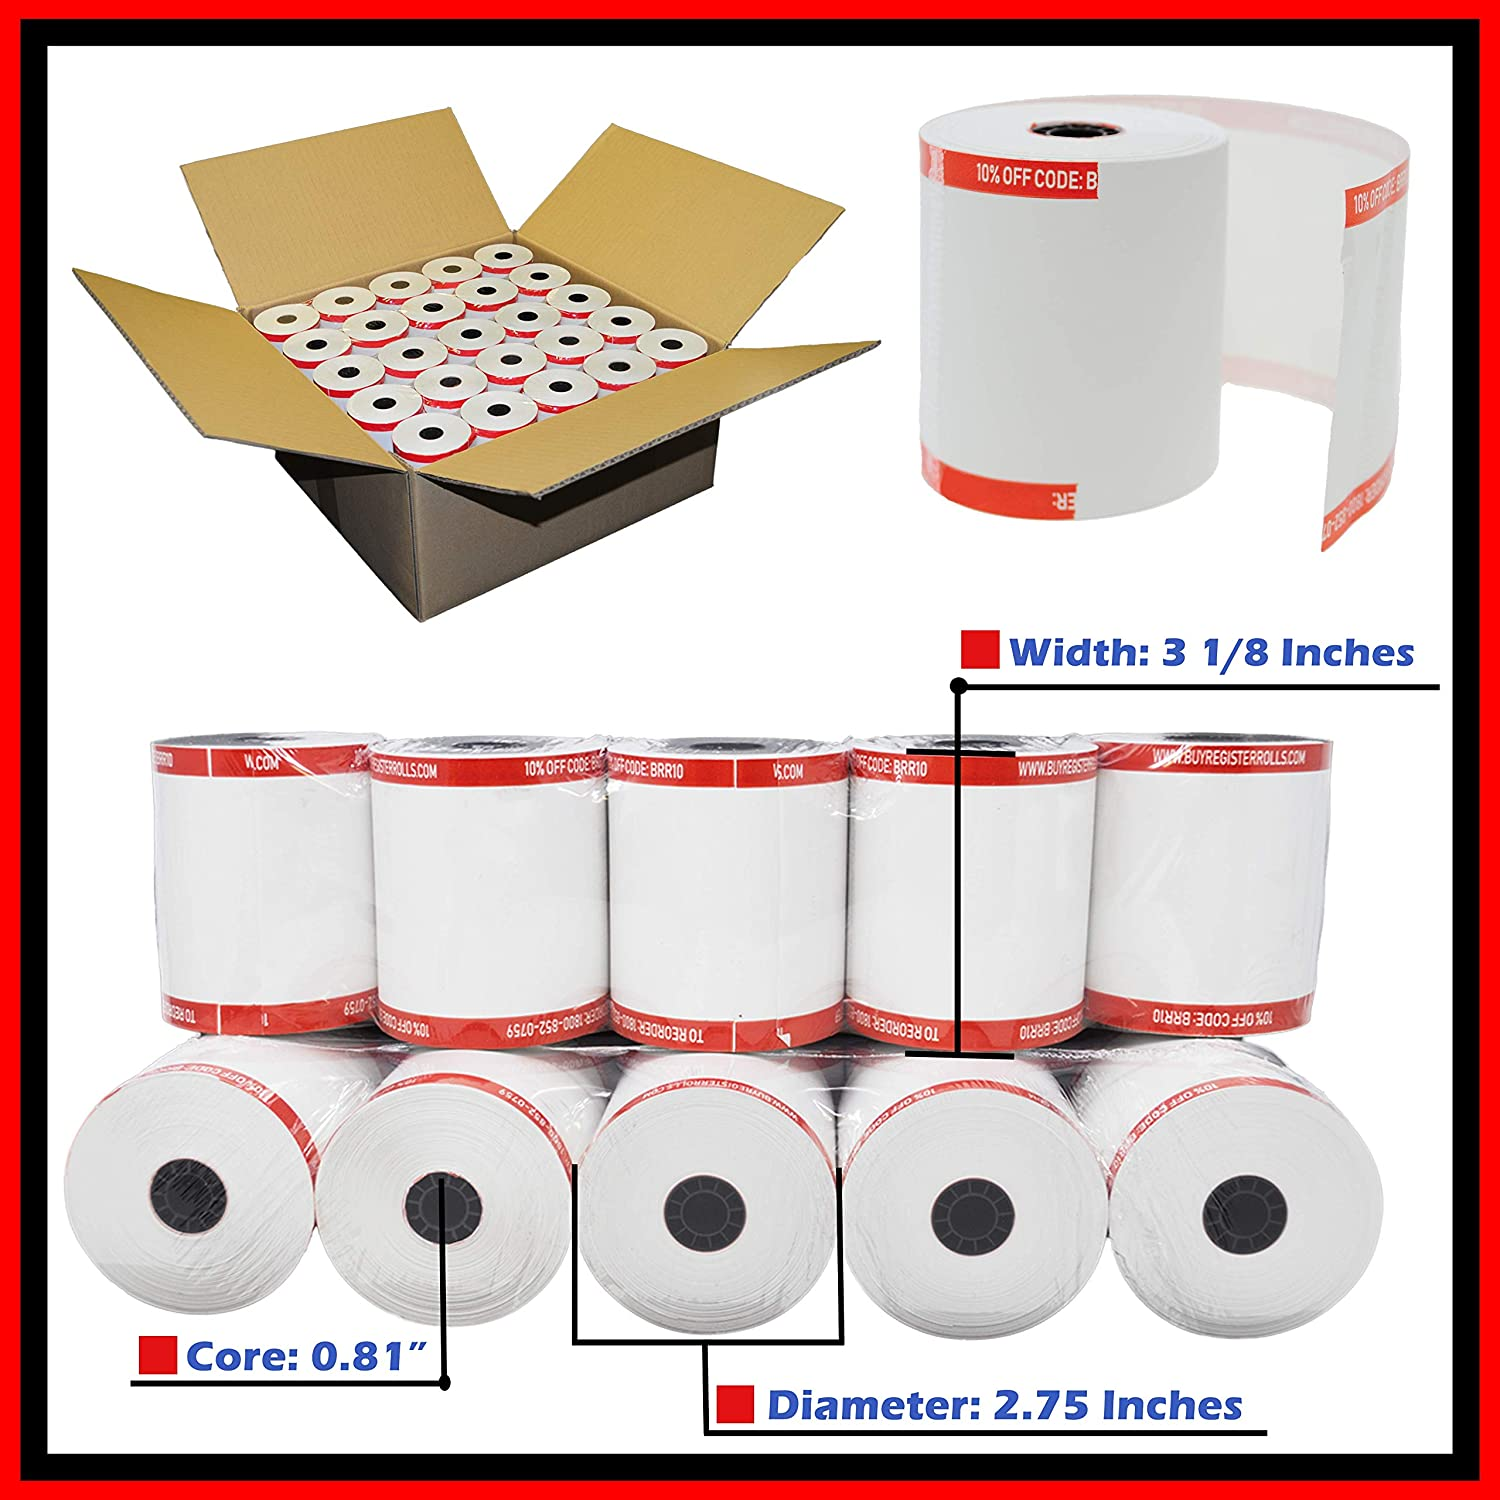 (50 Rolls) Shrink Wrapped 3 1 8 x 230 Thermal Receipt Paper Premium Quality Cash Register Paper Made in USA from BuyRegisterRolls 81FVPHq8keL